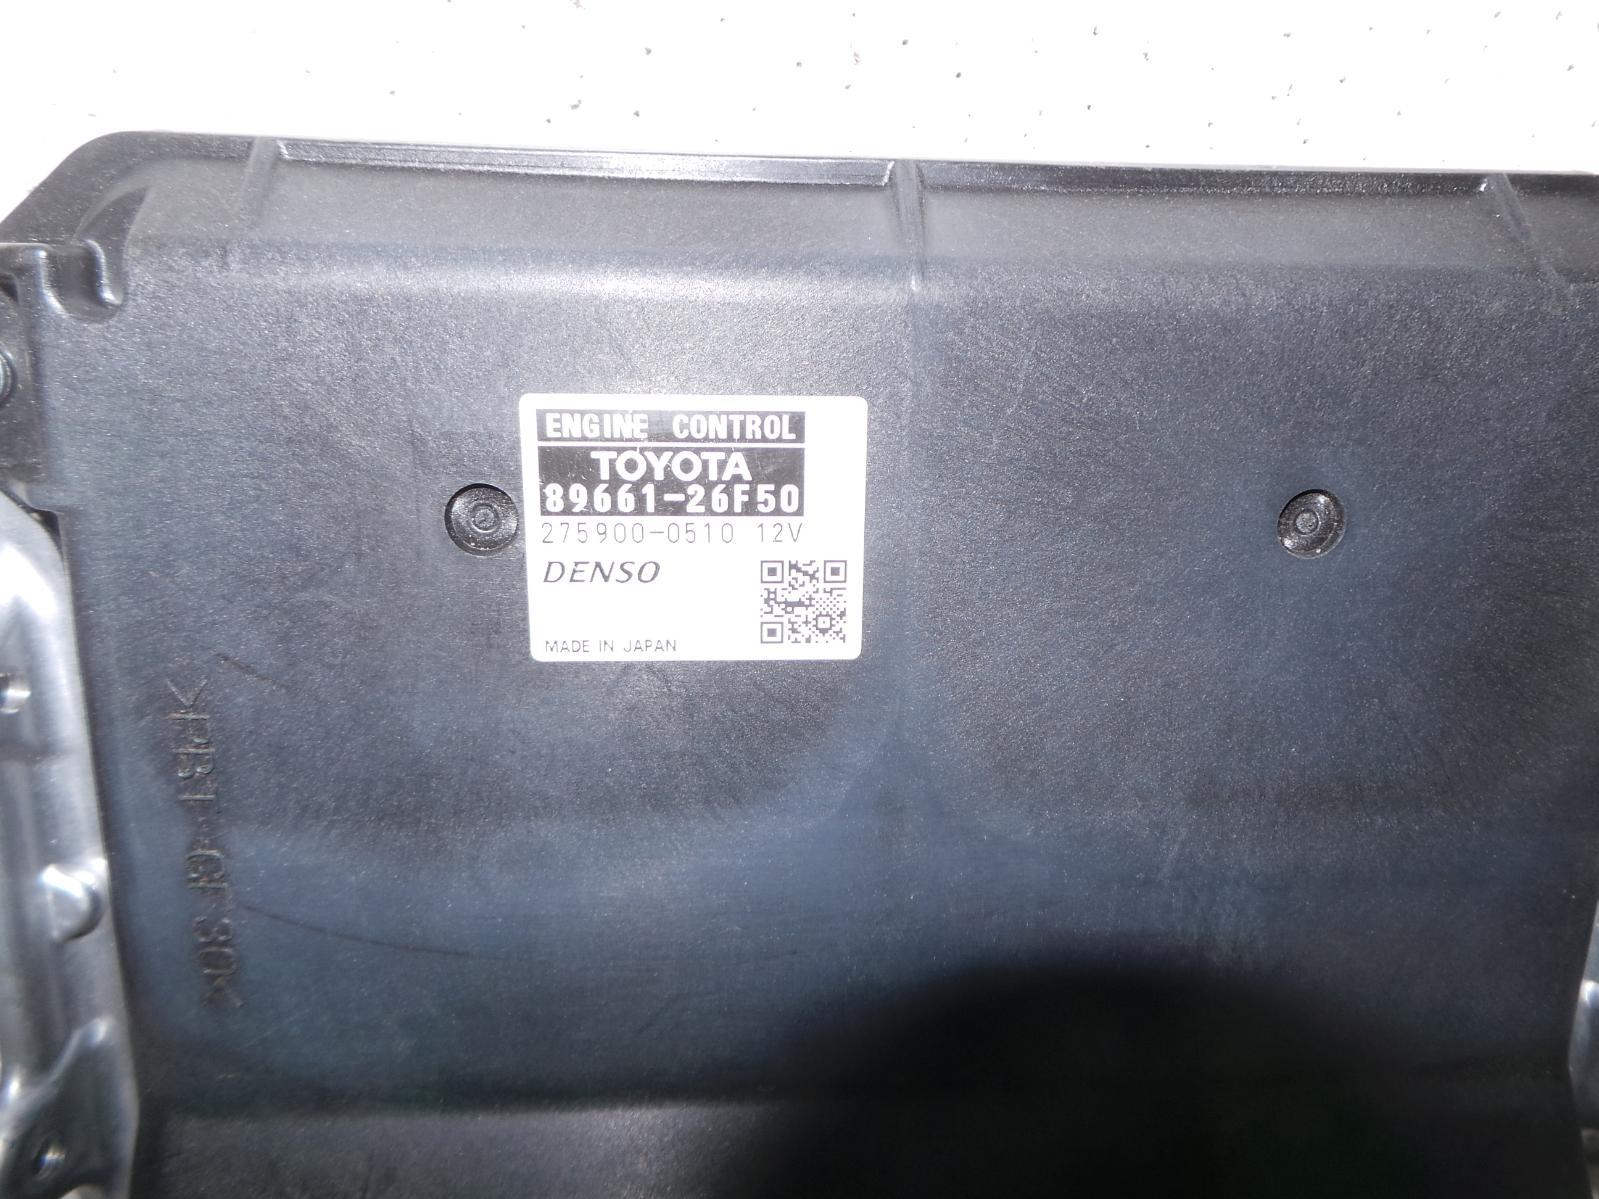 TOYOTA HIACE, Ecu, ENGINE ECU, 3.0, DIESEL, P/N 89661-26F50, ECU ONLY, KDH, 09/06-